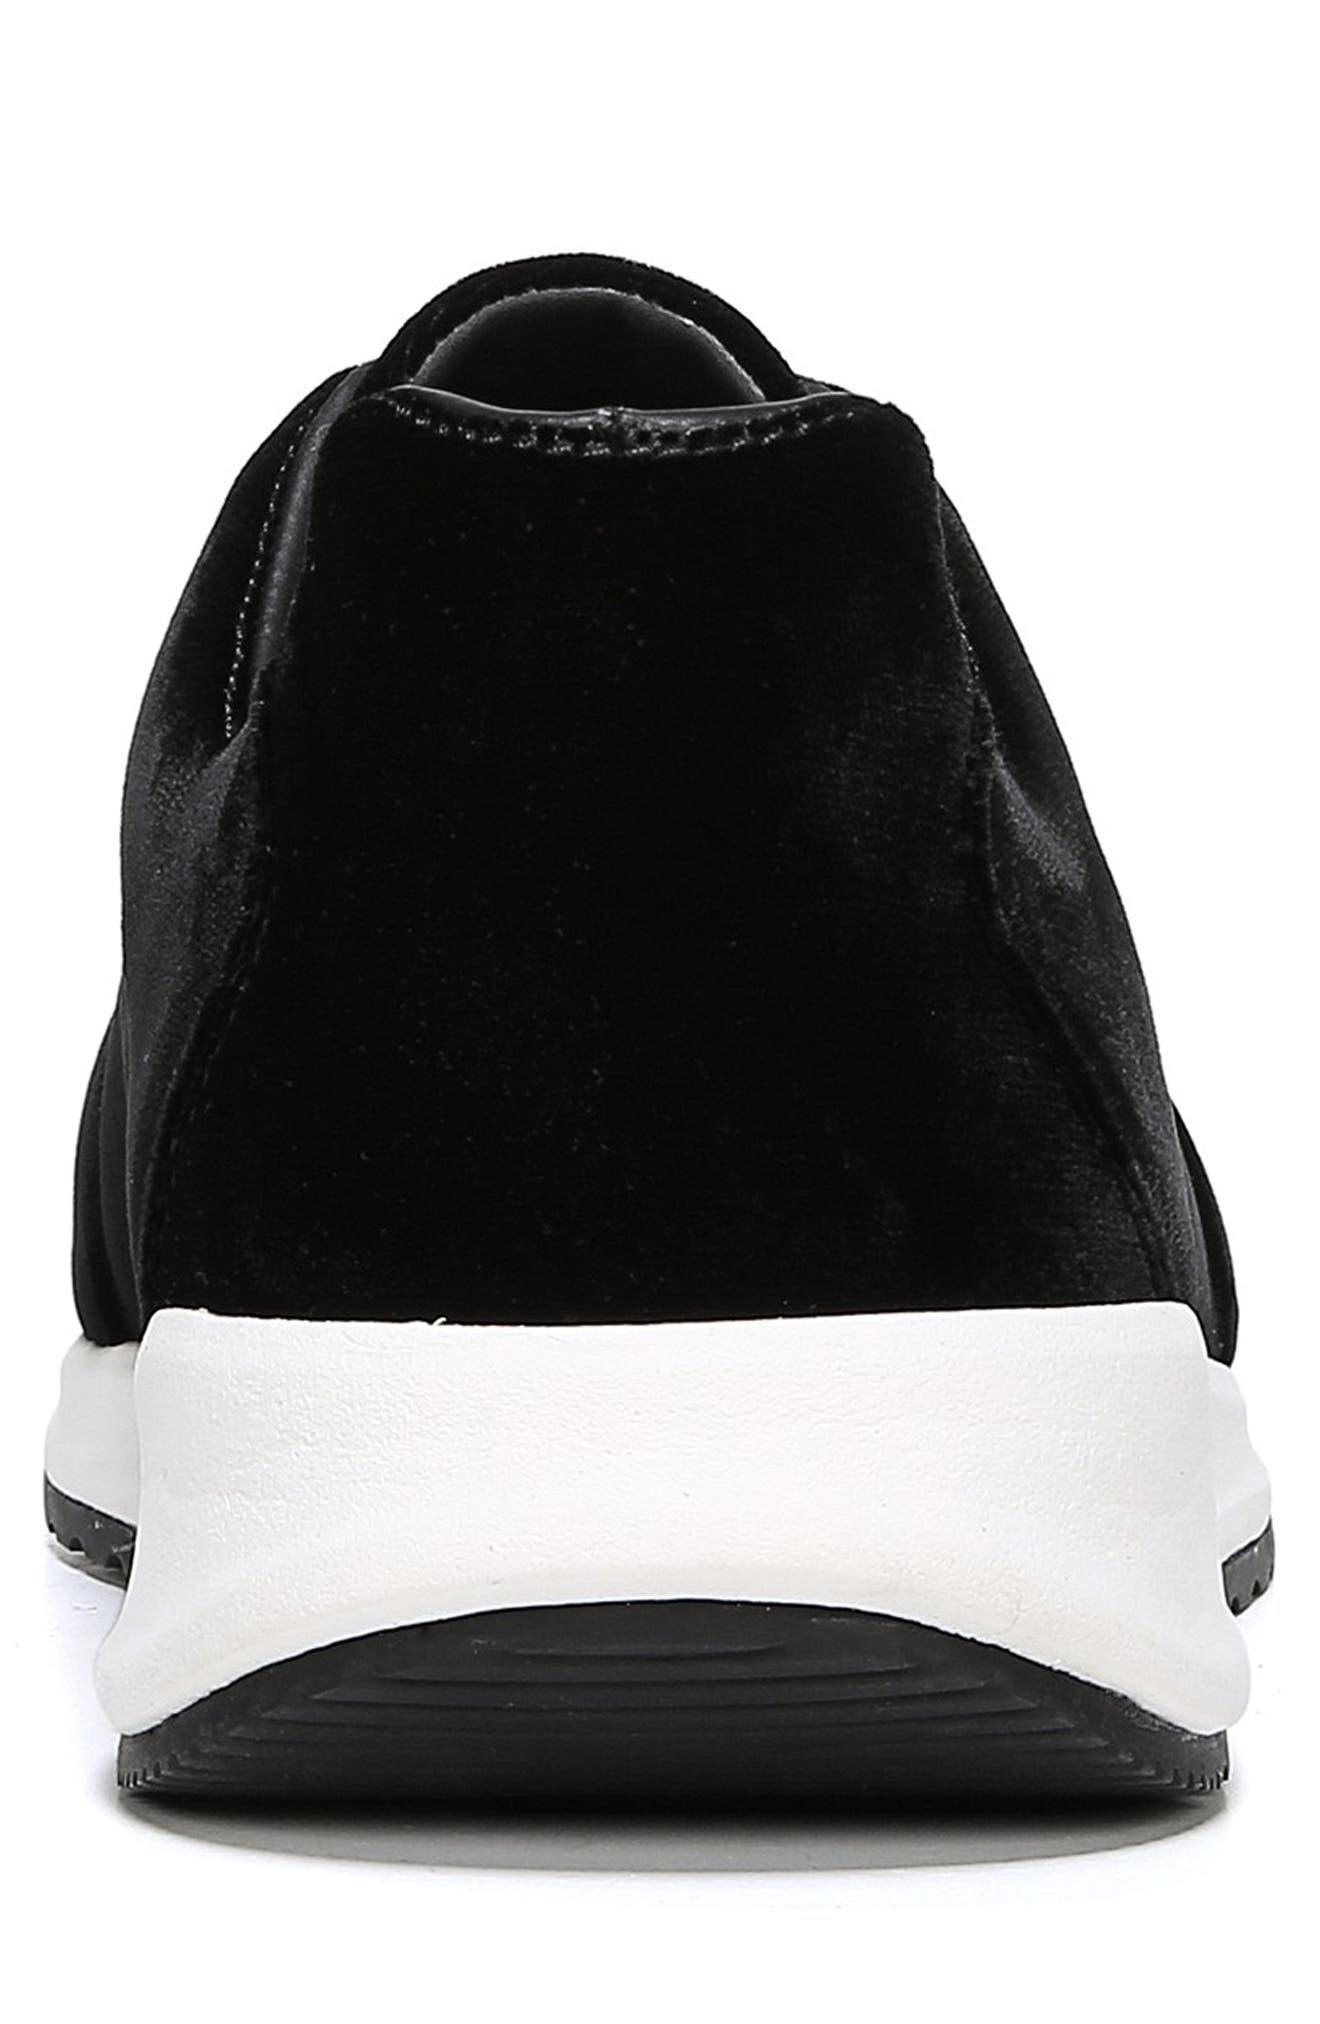 Garret Sneaker,                             Alternate thumbnail 7, color,                             BLACK